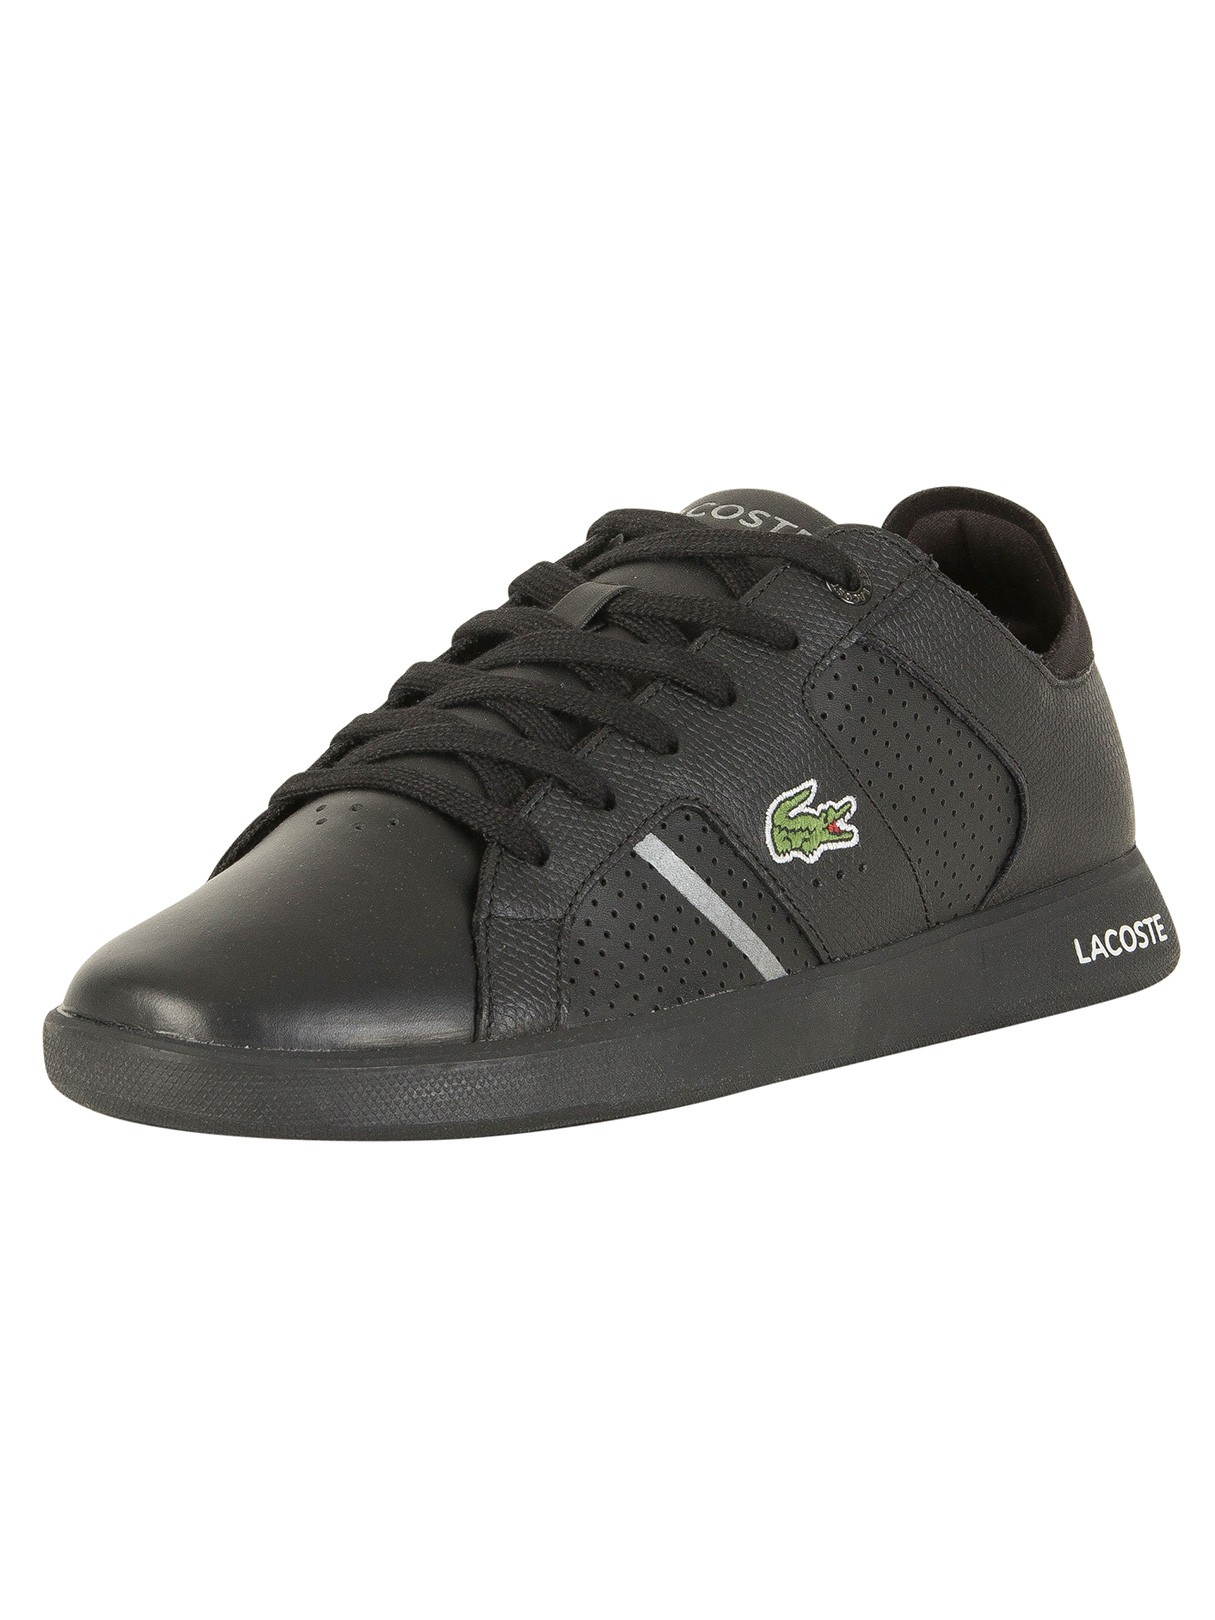 Mens Novas Ct 118 1 SPM Trainers Lacoste